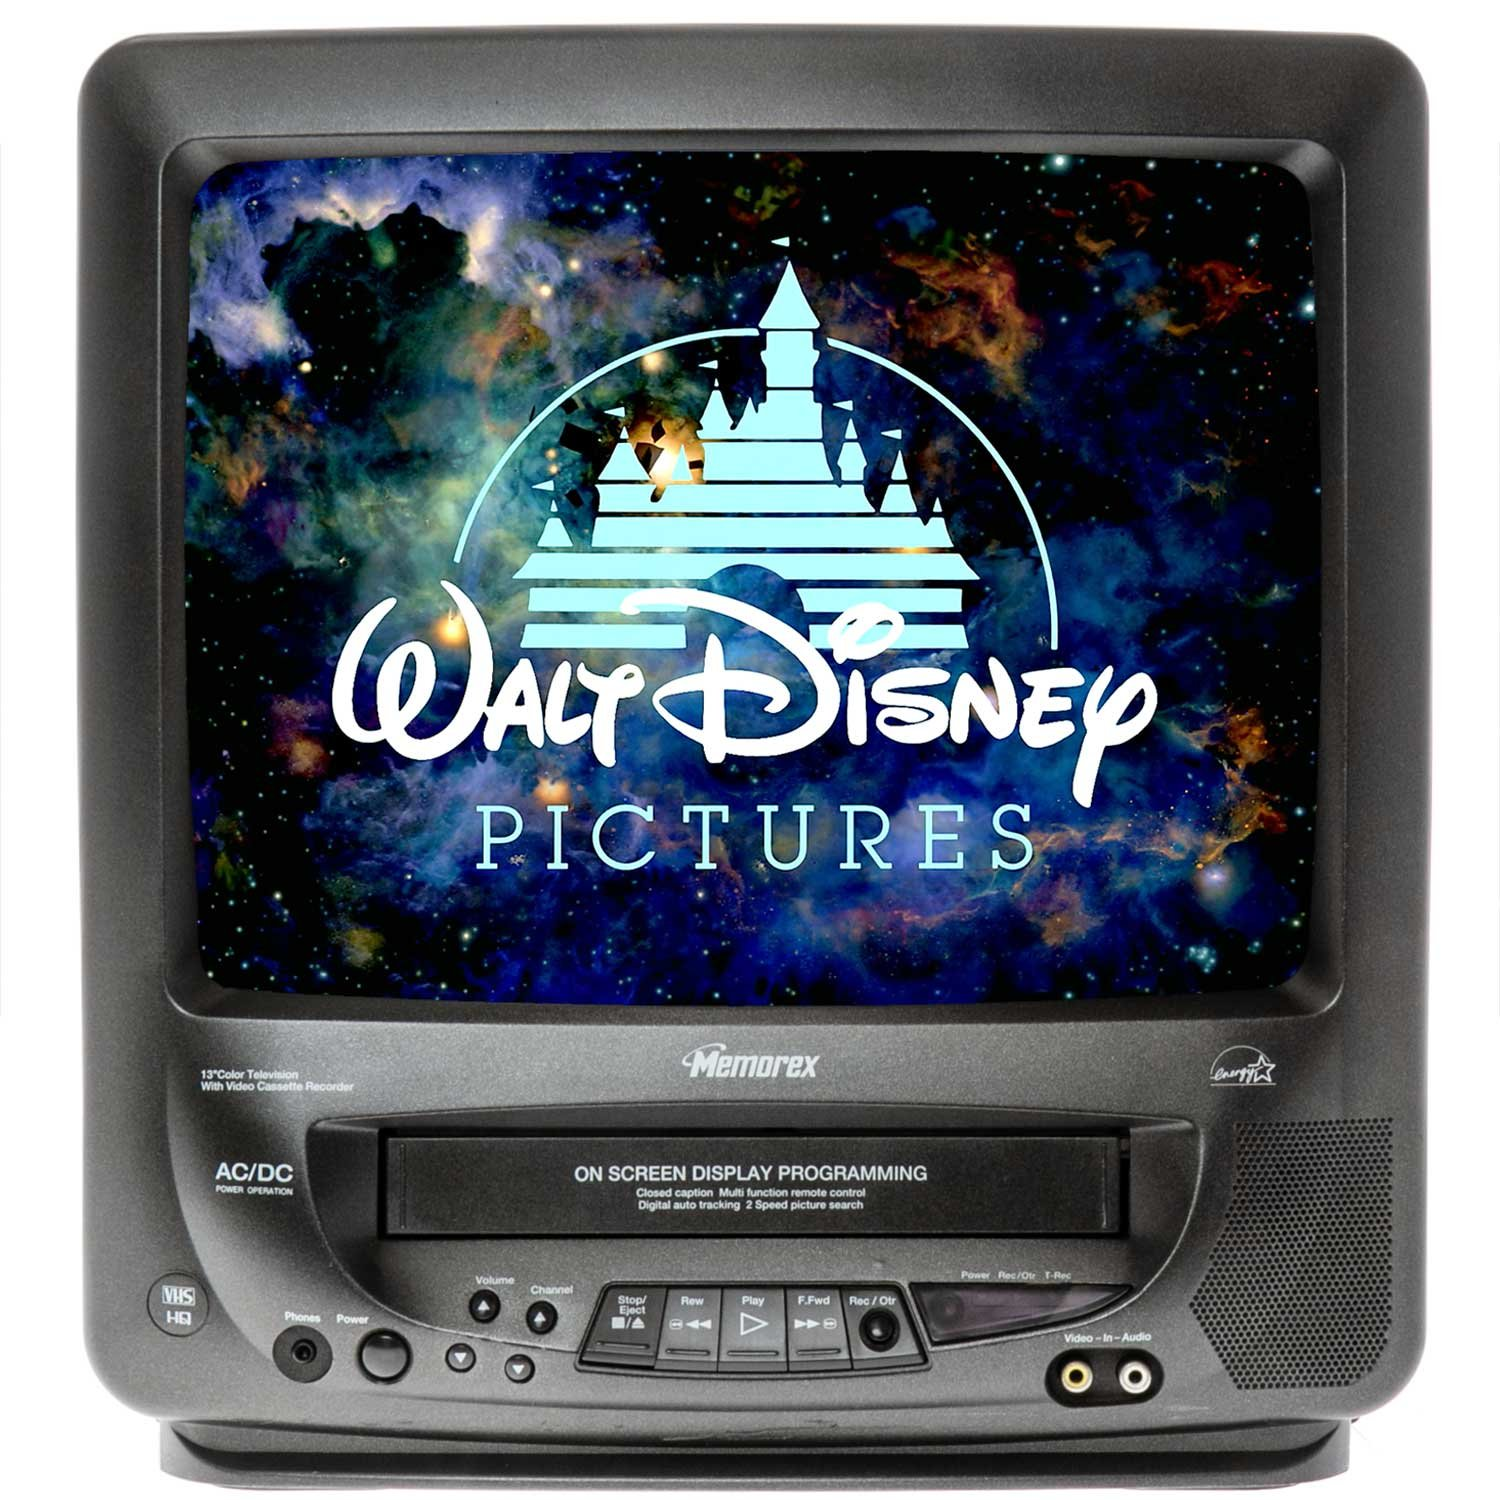 Cheap Vhs Tv, find Vhs Tv deals on line at Alibaba.com